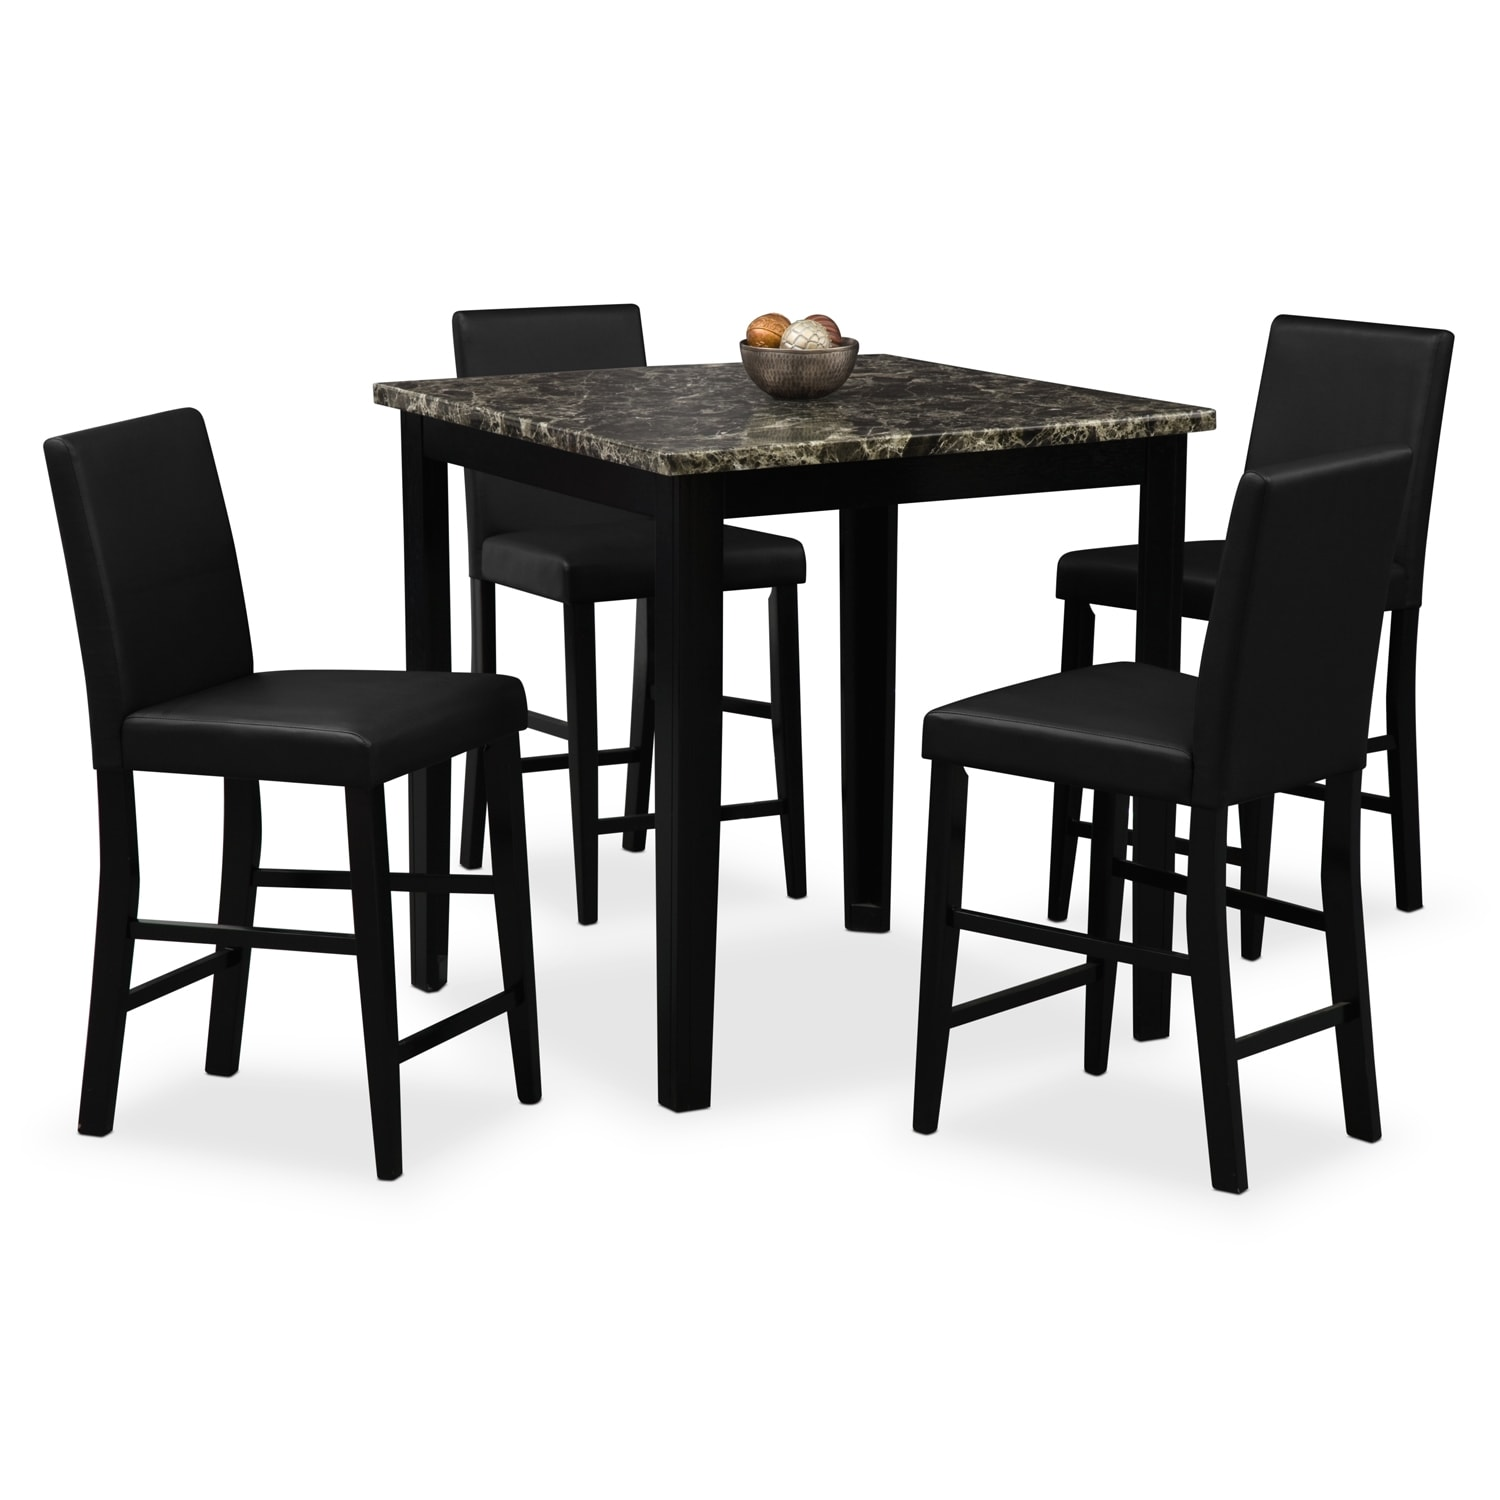 Dining room furniture shadow counter height table and 4 chairs black